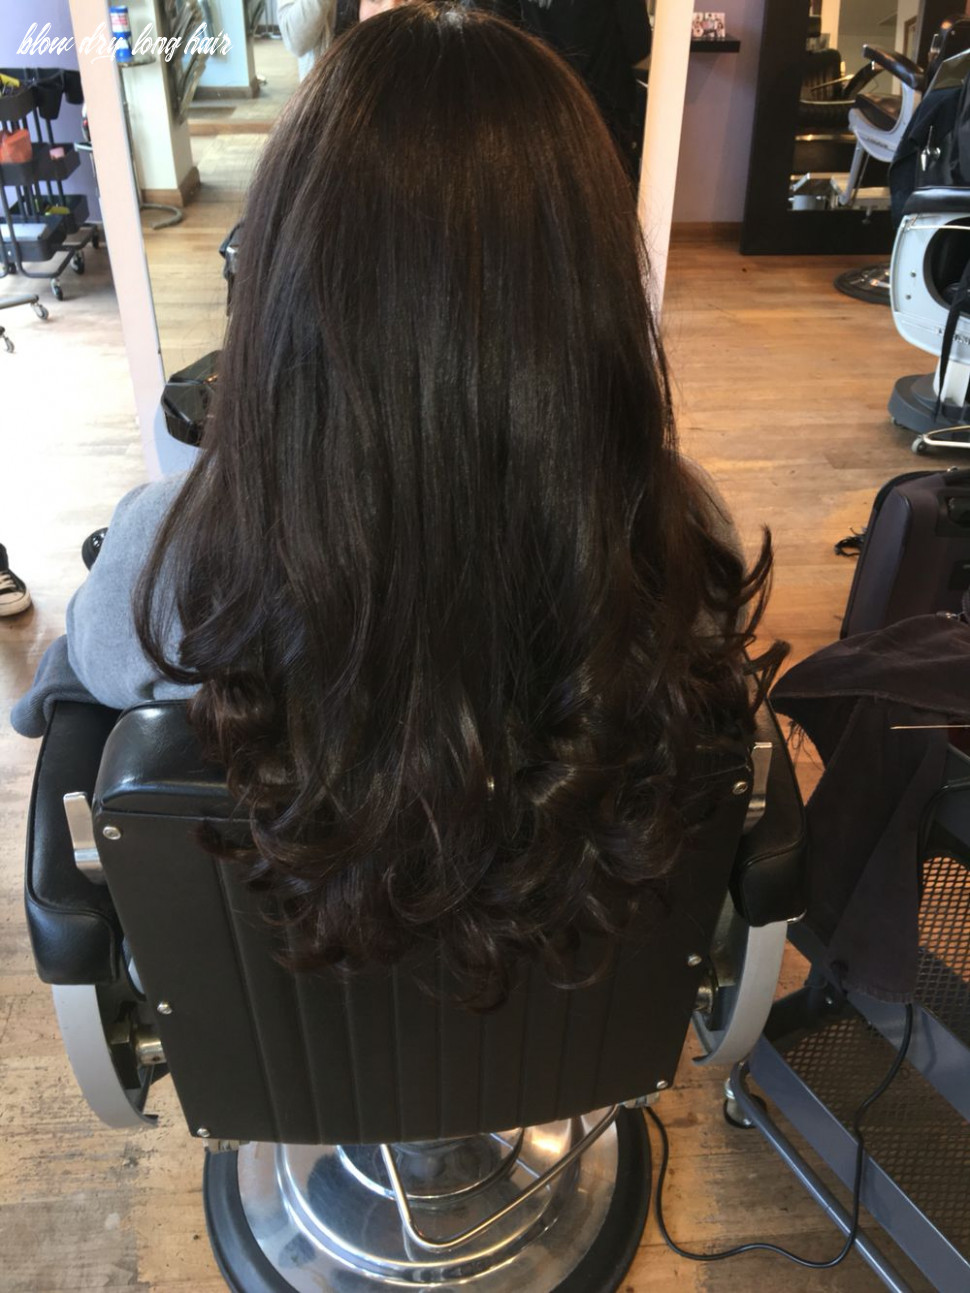 Brunette, bouncy, volume curly blowdry (with images)   long hair